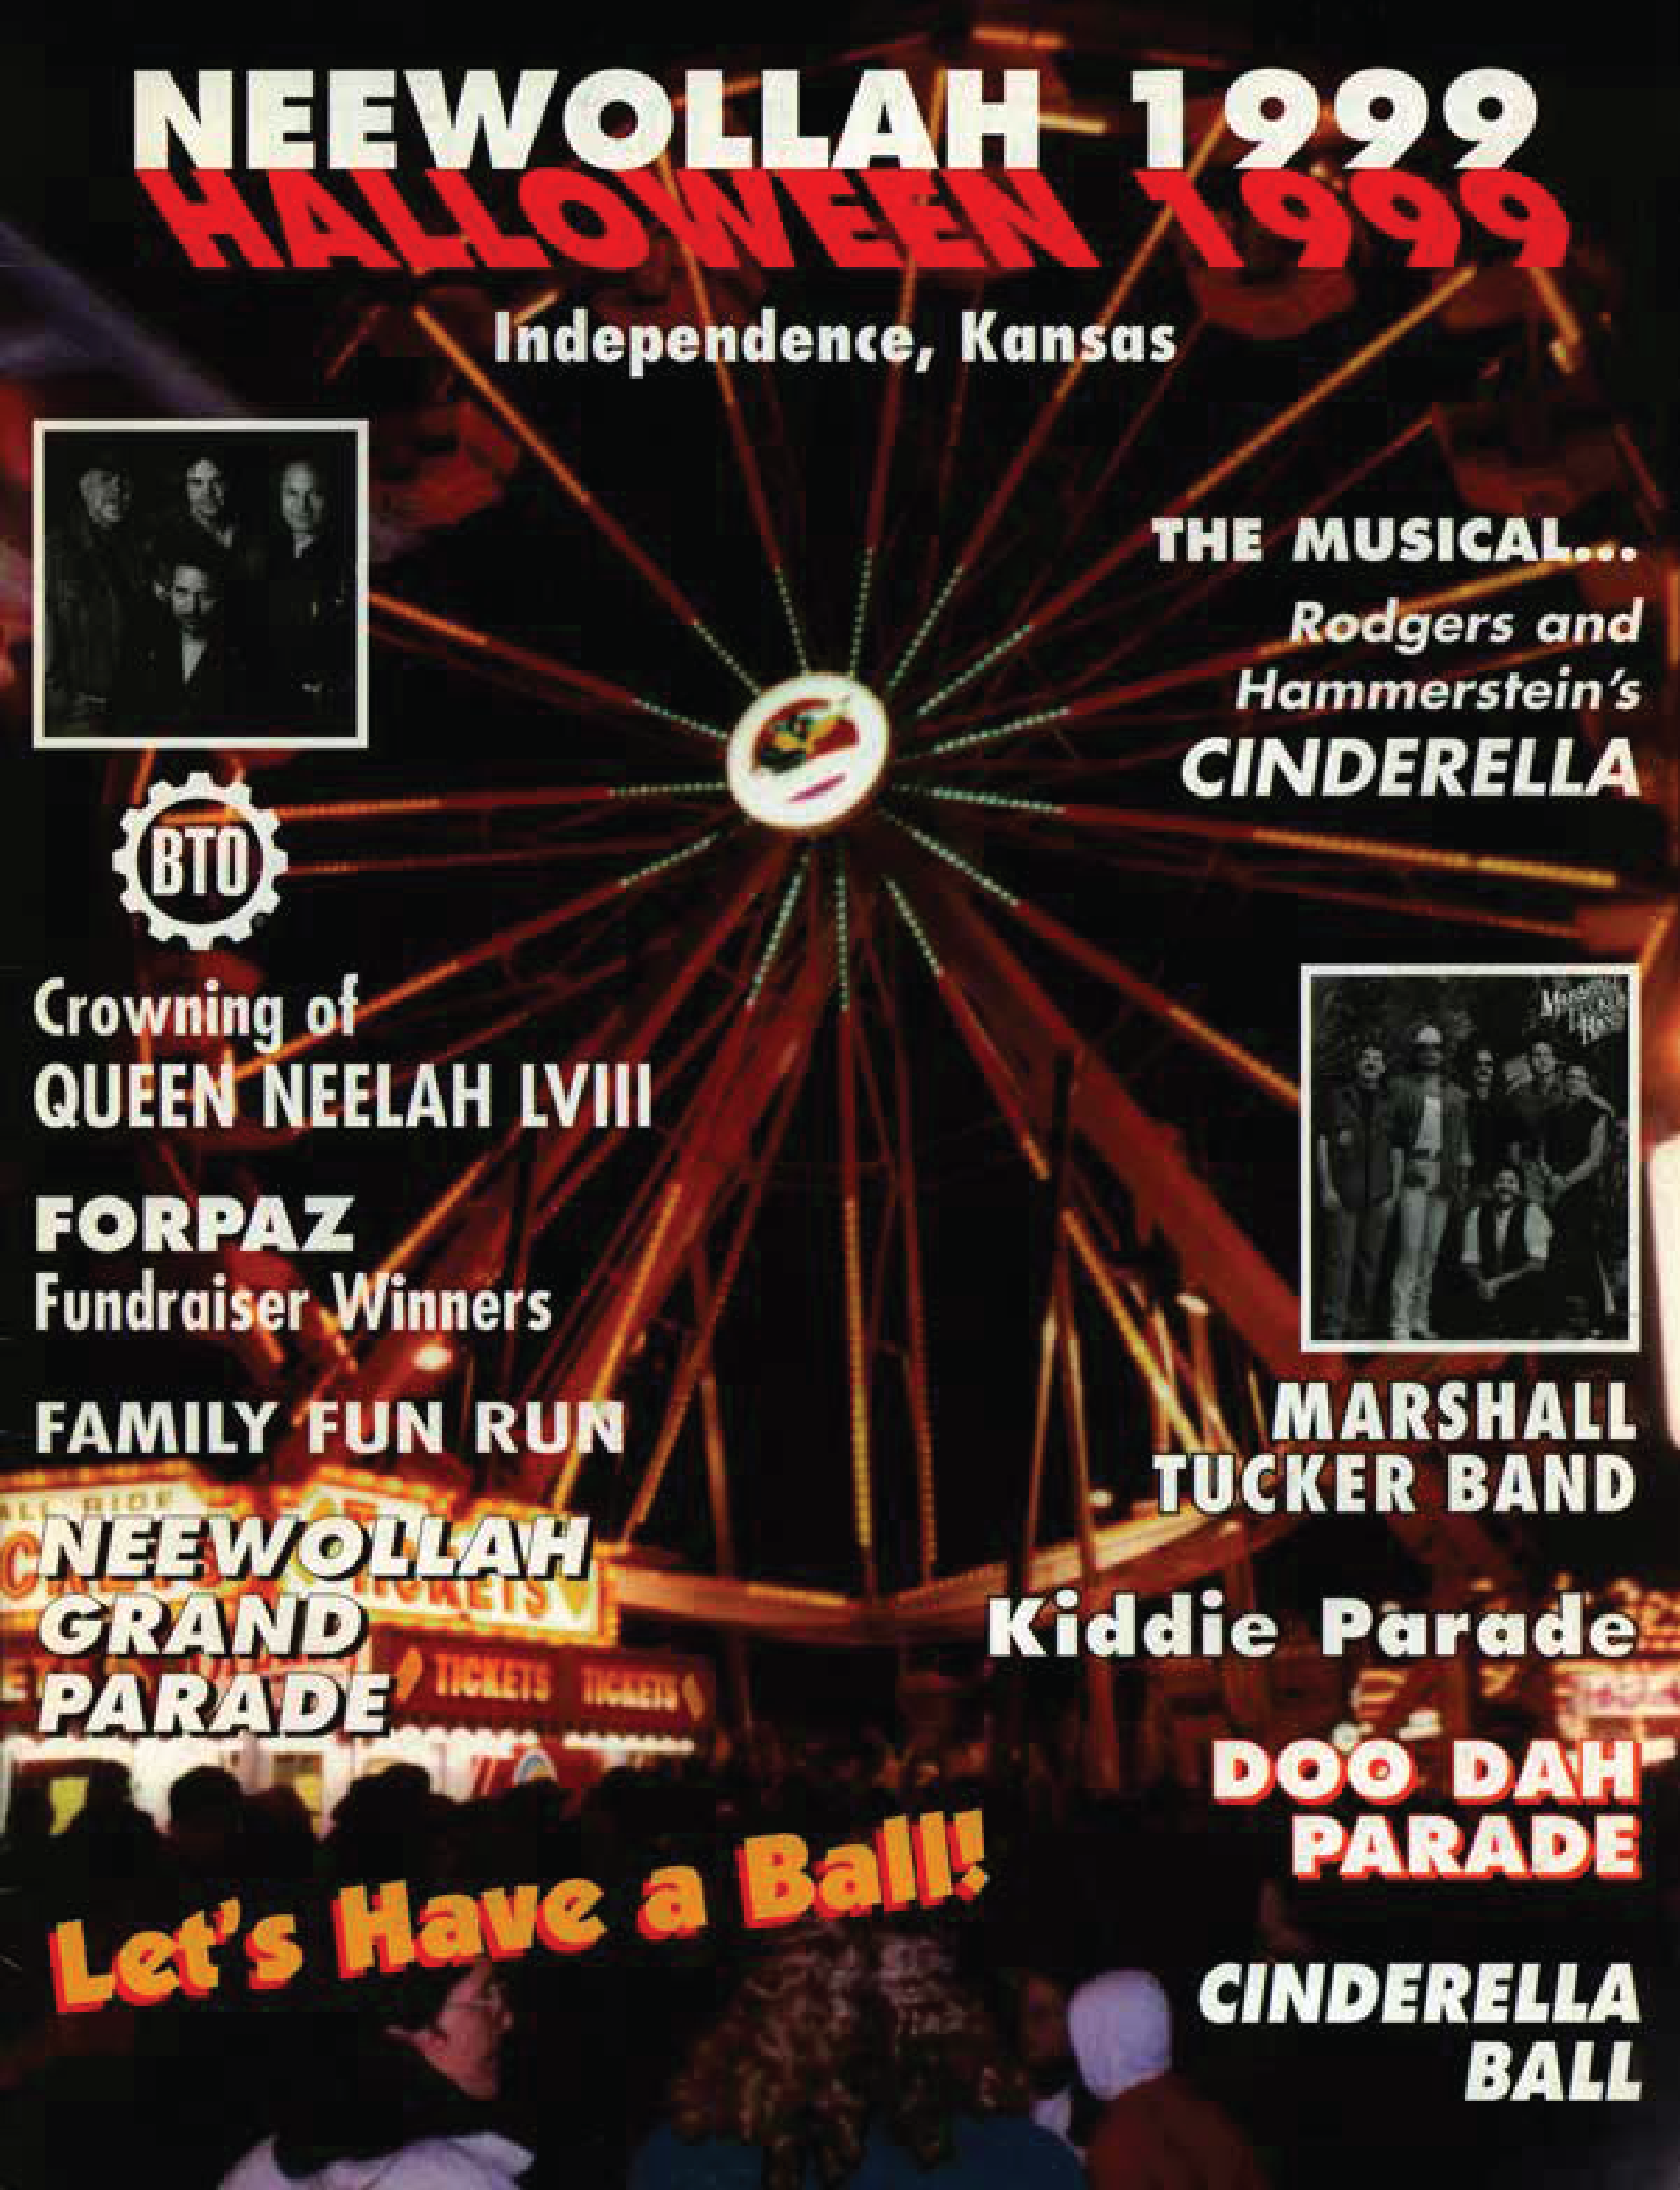 Neewollah 1999 Let's Have a Ball